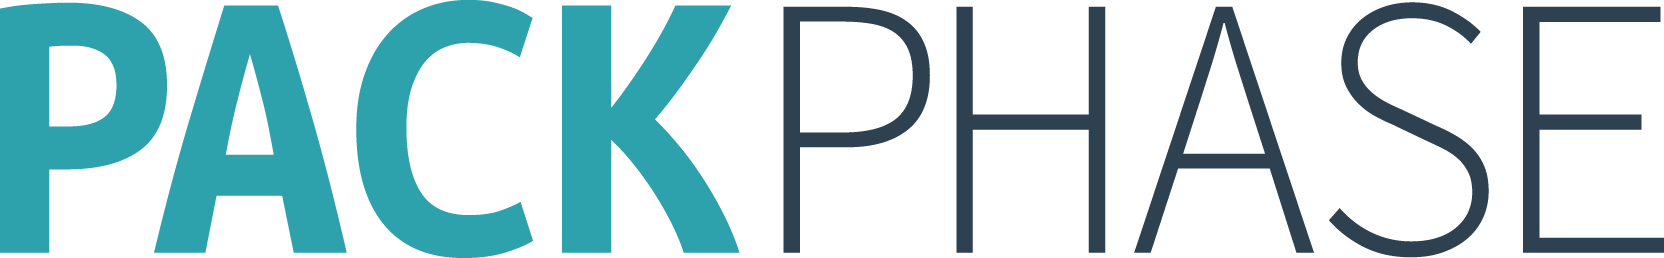 Packphase Logo